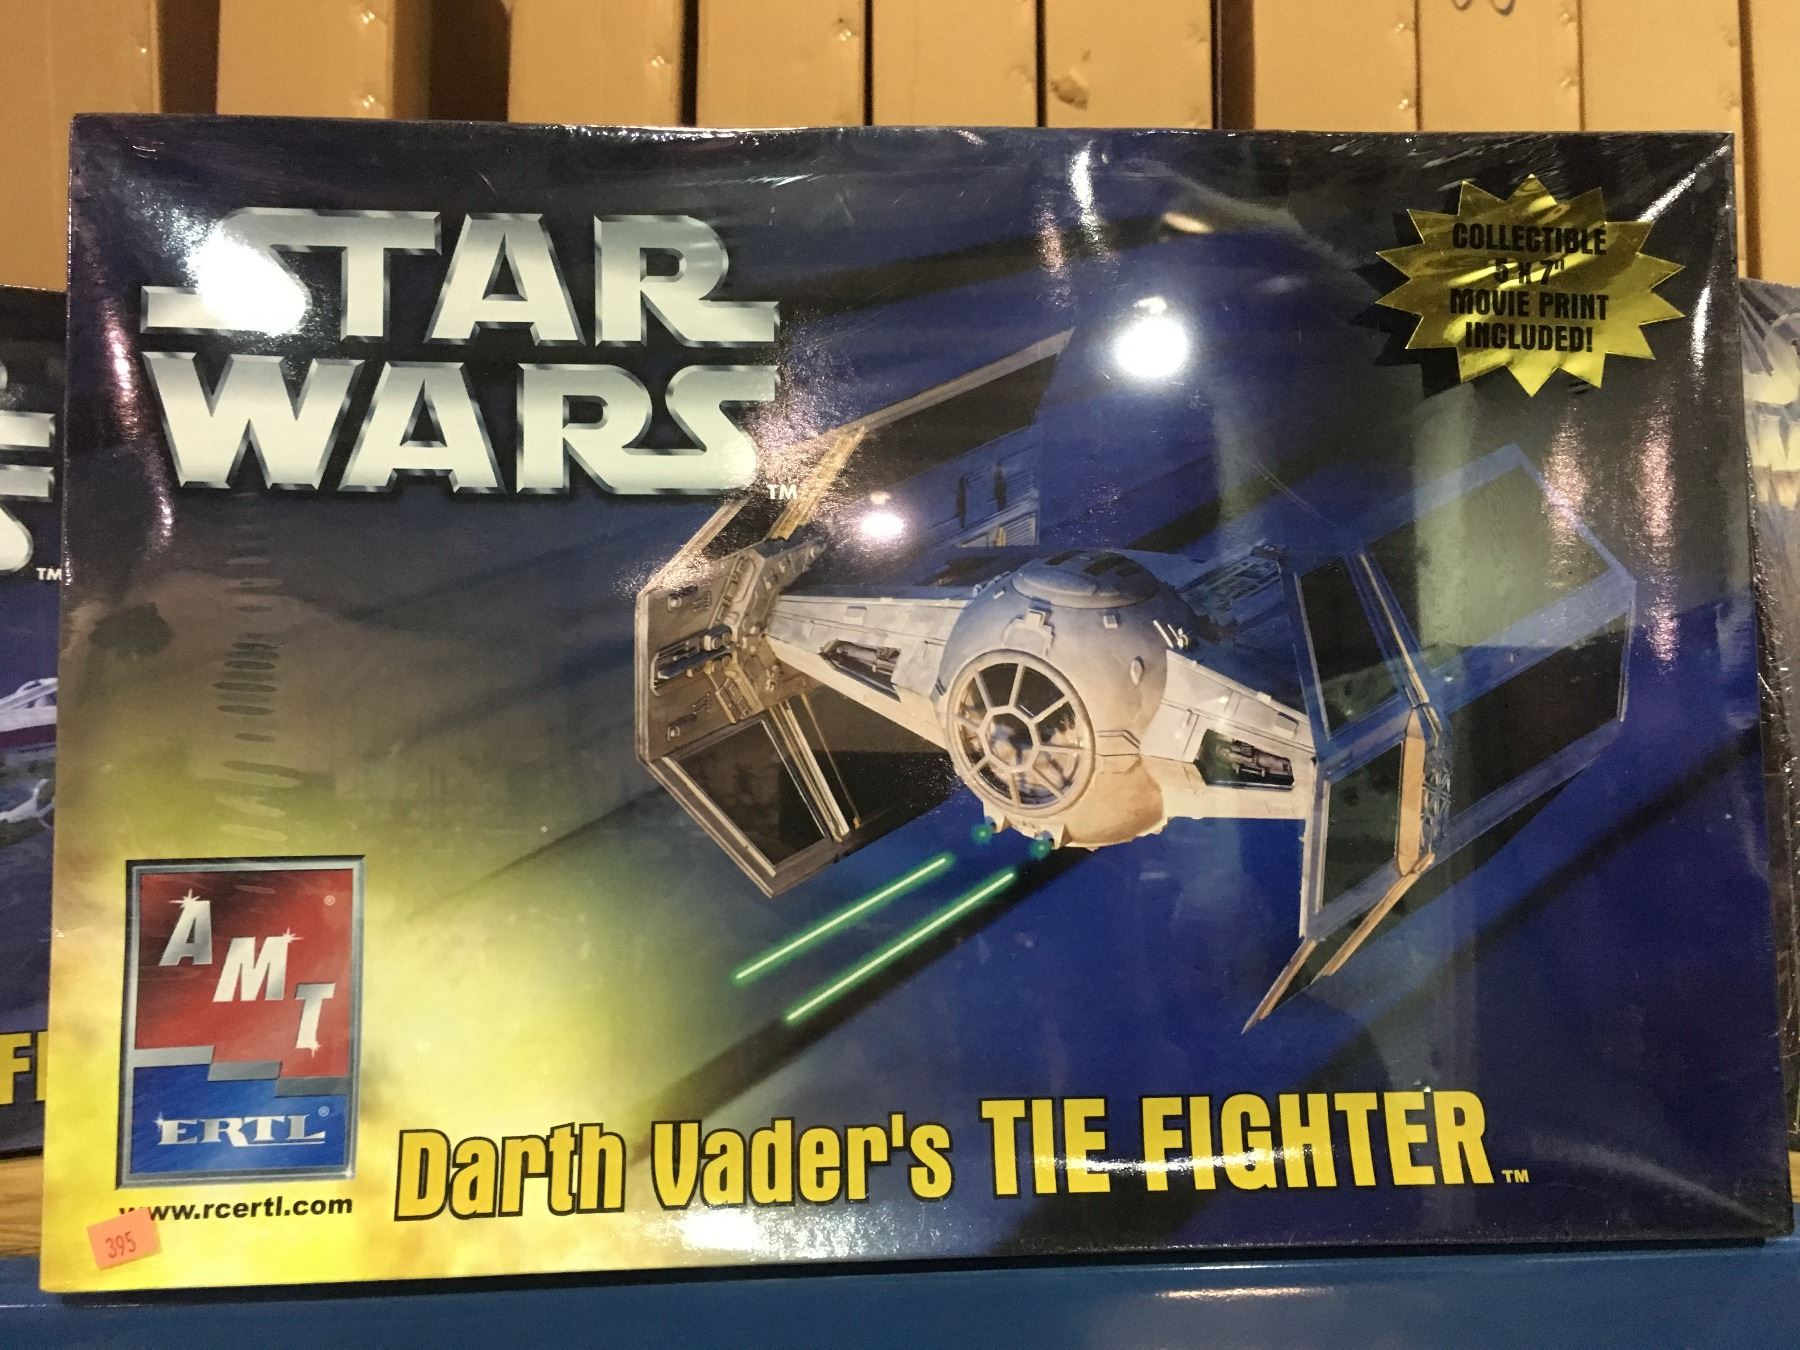 AMT STAR WARS DARTH VADER'S TIE FIGHTER MODEL KIT